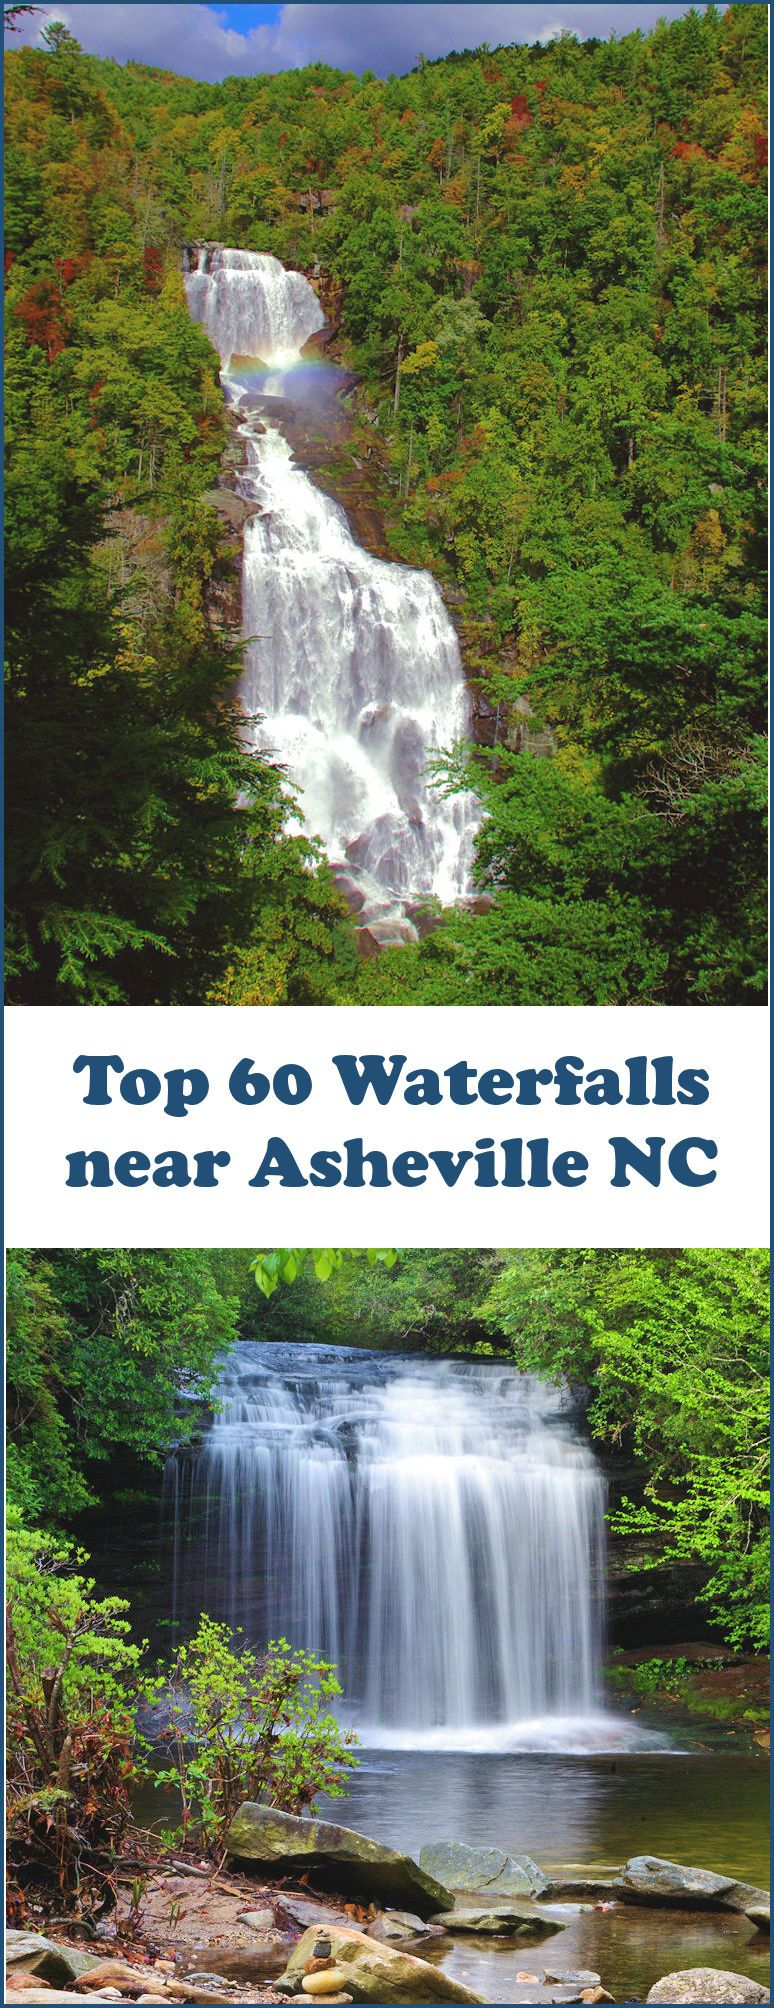 Find the 60 best waterfalls to visit in the north carolina mountains near asheville https